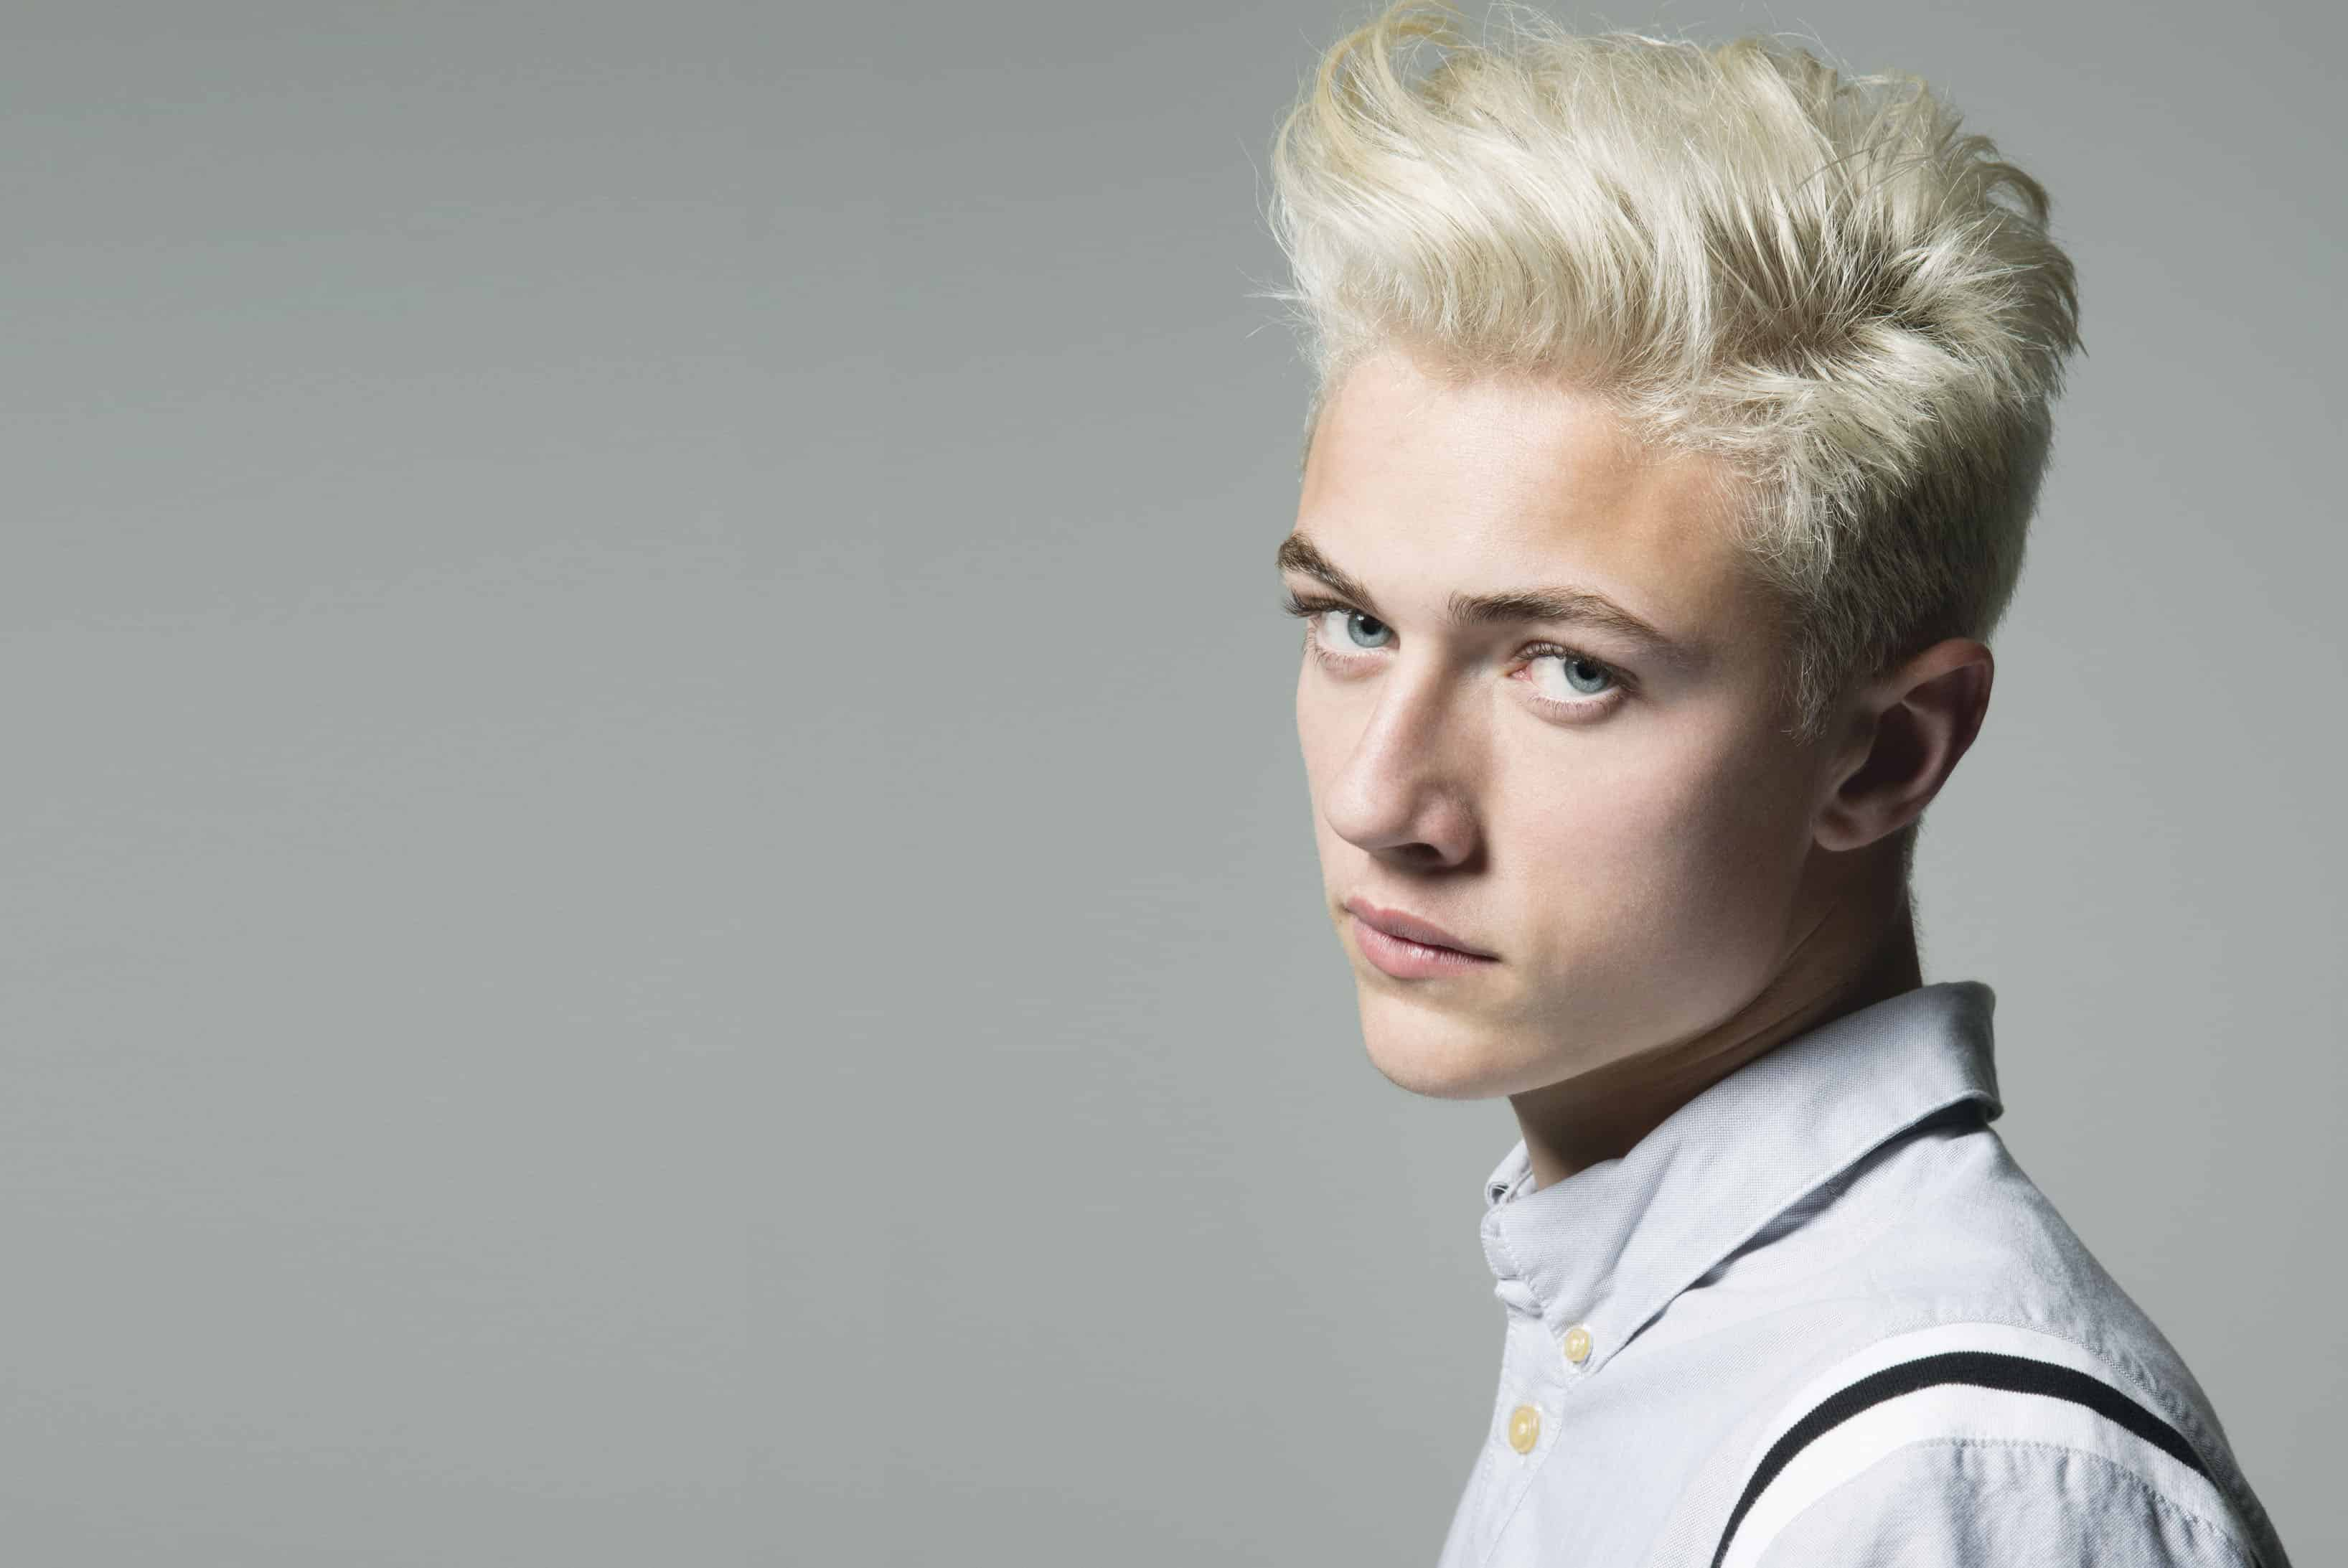 Hair Bleach For Men : 55 Stunning Bleached Hair for Men - How to Care at Home